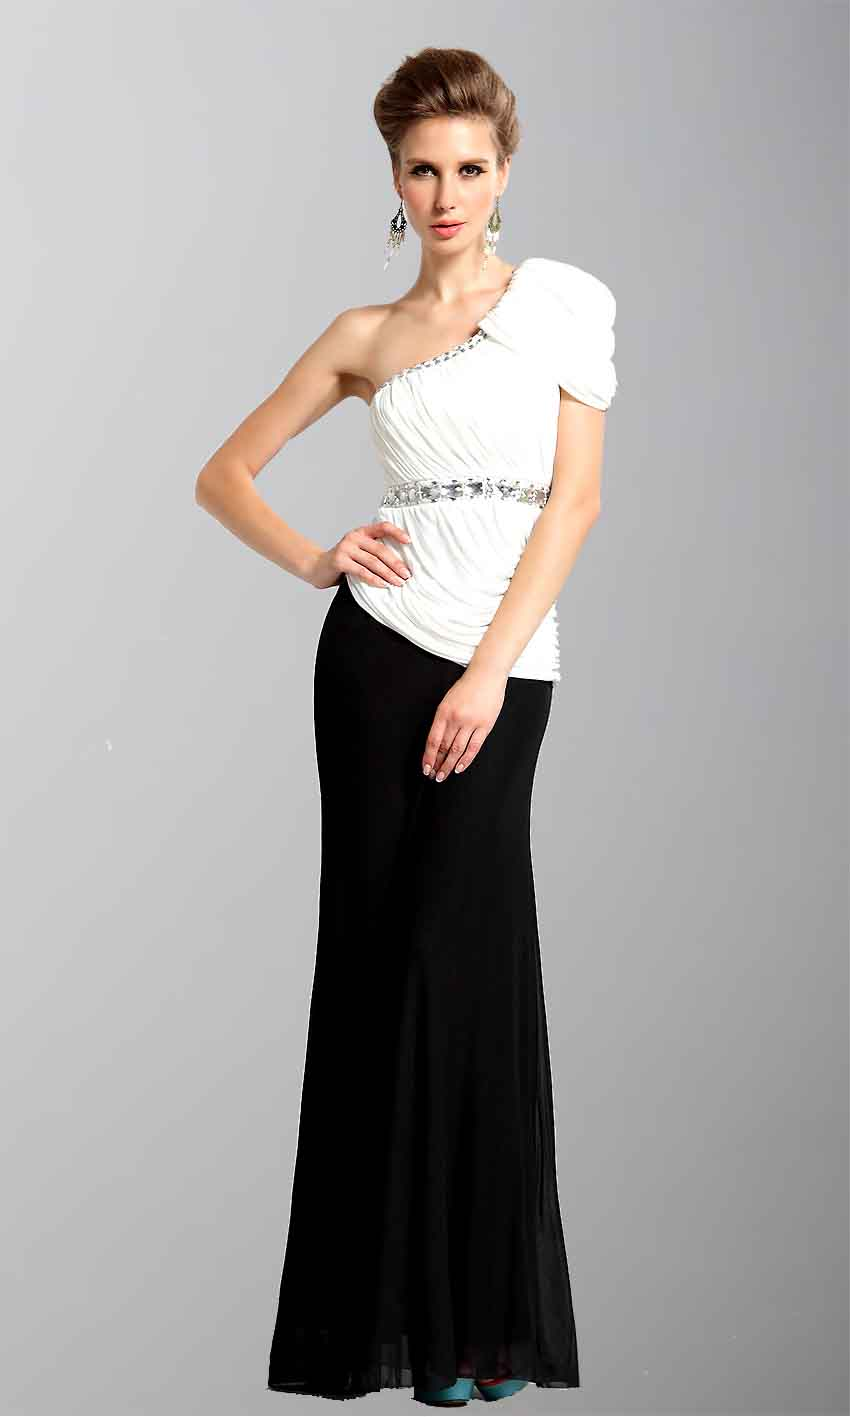 Black And White One Shoulder Straight leg Evening Gowns KSP051 [KSP051] - £103.00 : Cheap Prom Dresses Uk, Bridesmaid Dresses, 2014 Prom & Evening Dresses, Look for cheap elegant prom dresses 2014, cocktail gowns, or dresses for special occasions? kissprom.co.uk offers various bridesmaid dresses, evening dress, free shipping to UK etc.